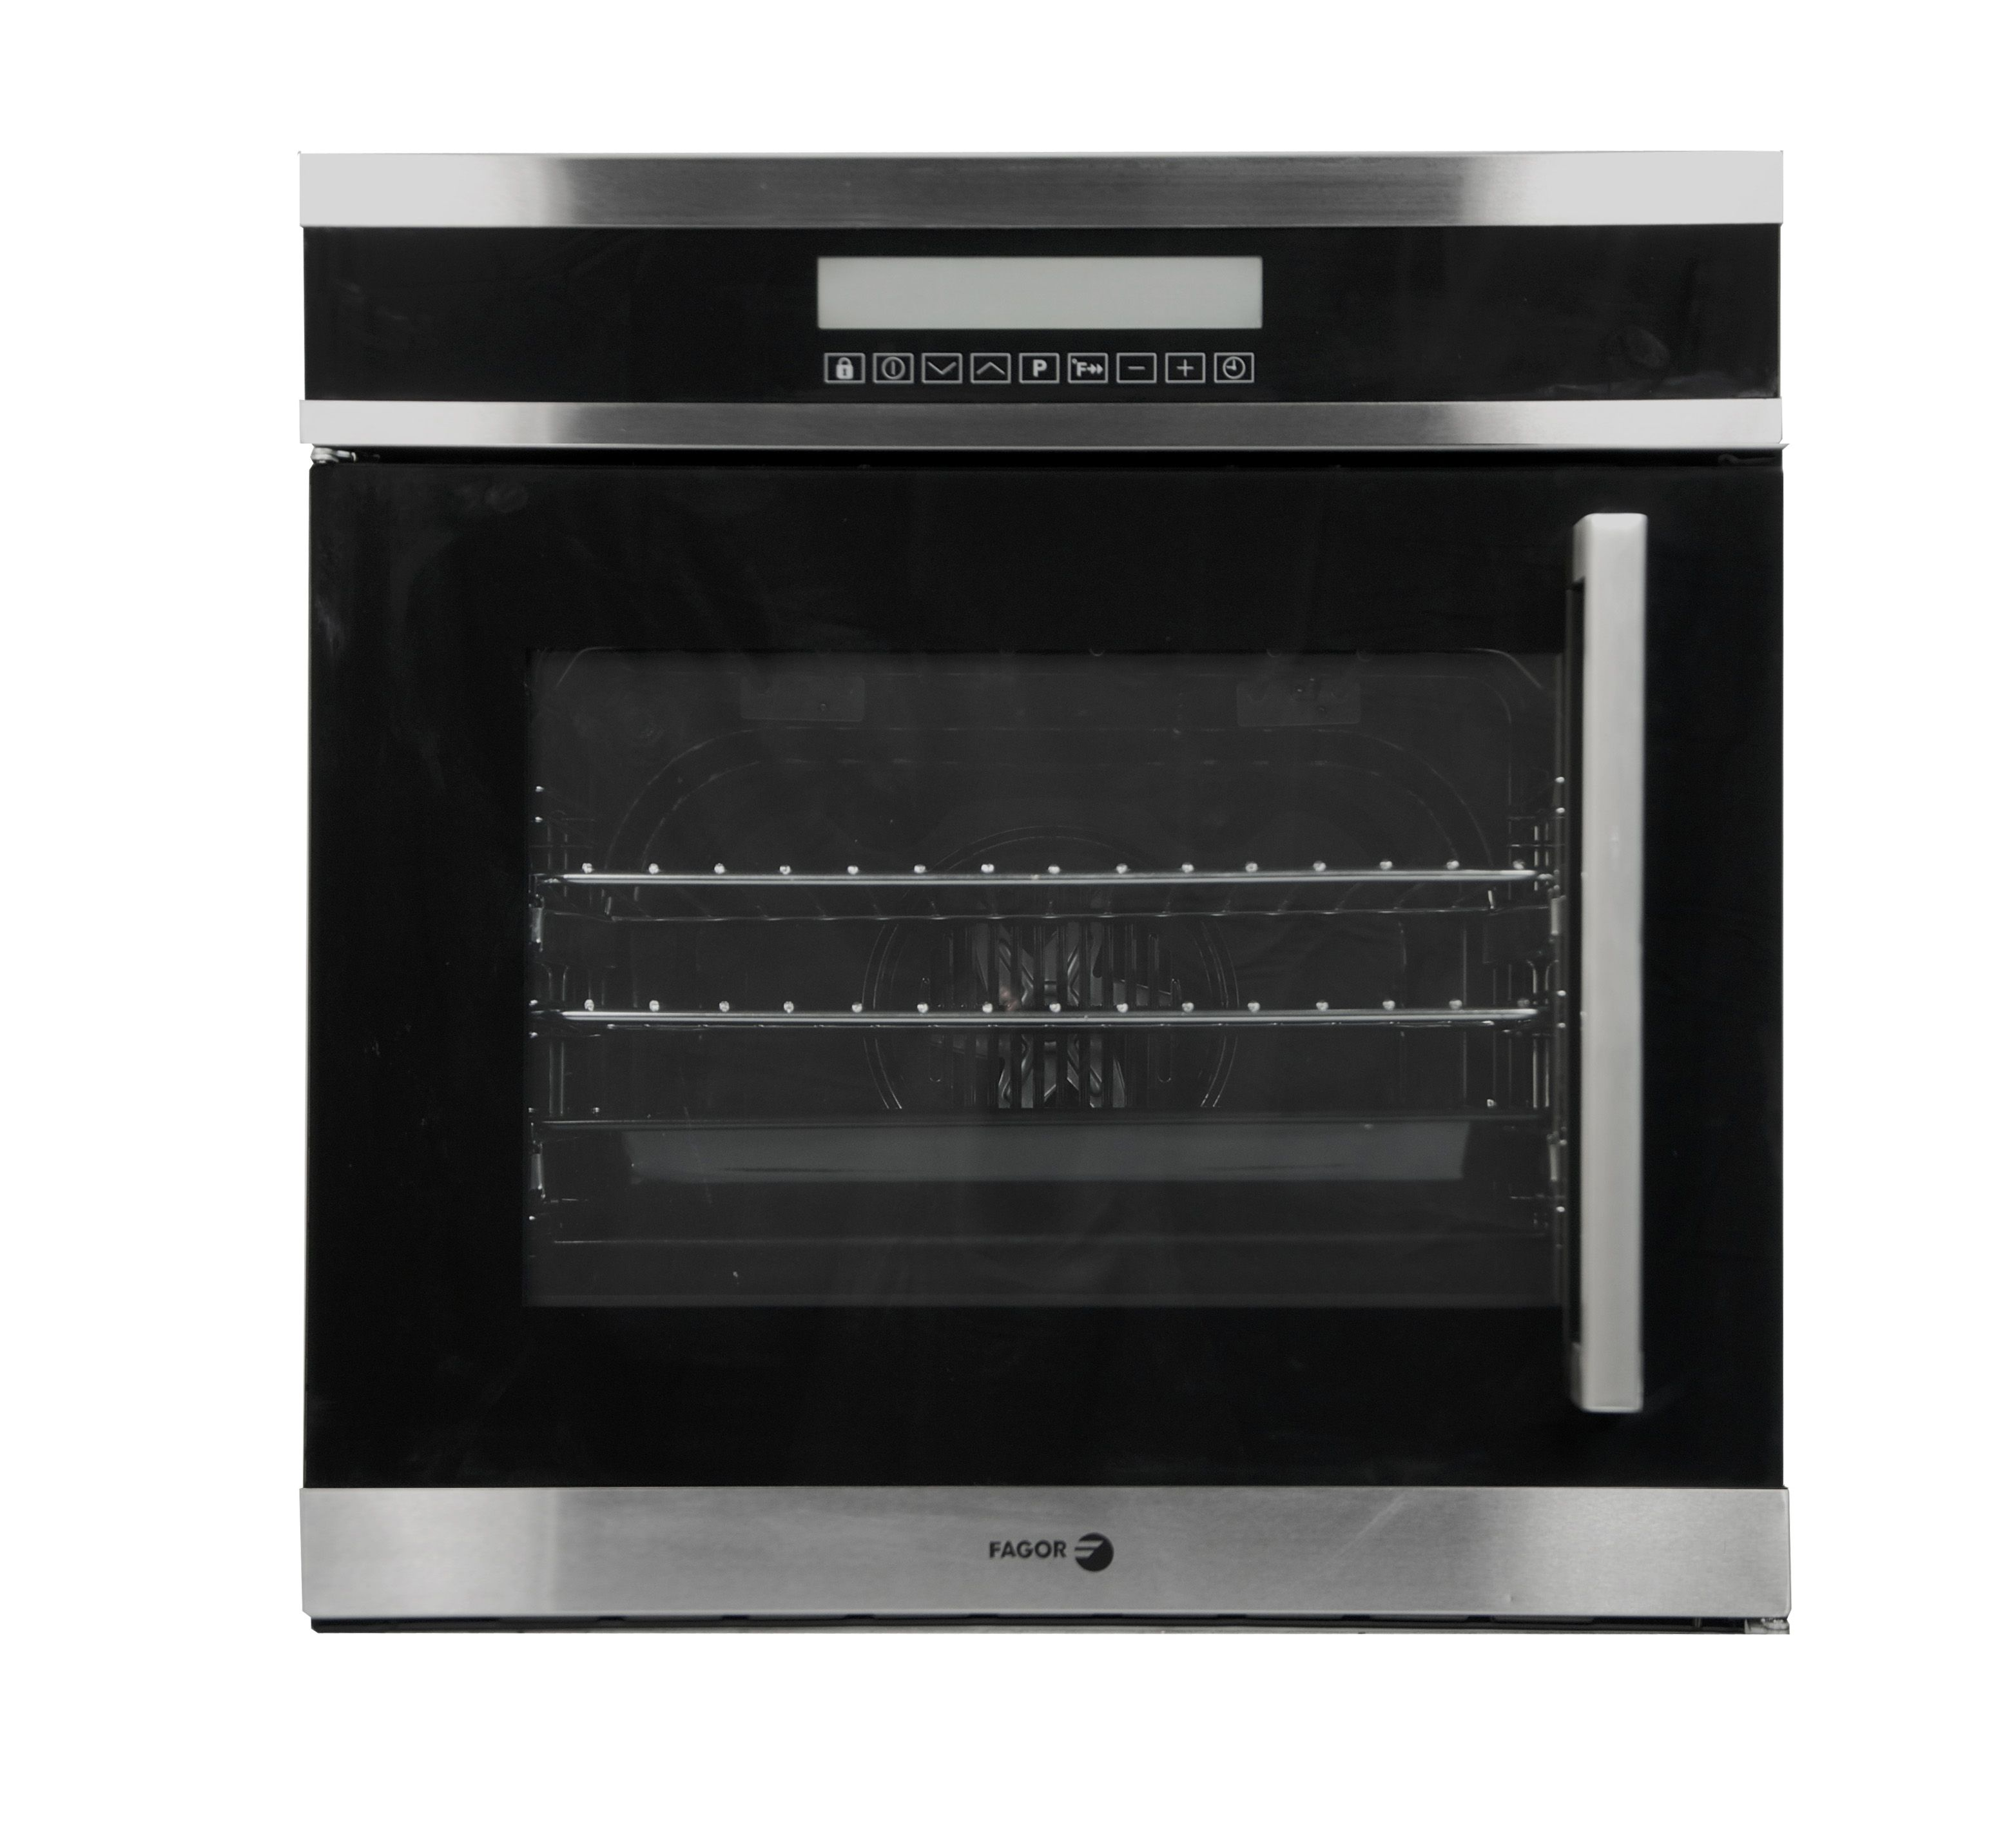 24 Left Side Opening Oven 10 Cooking Programs Easy To Clean Interior Enamel Stainless Steel Finish Wall Oven Single Electric Wall Oven Convection Wall Oven